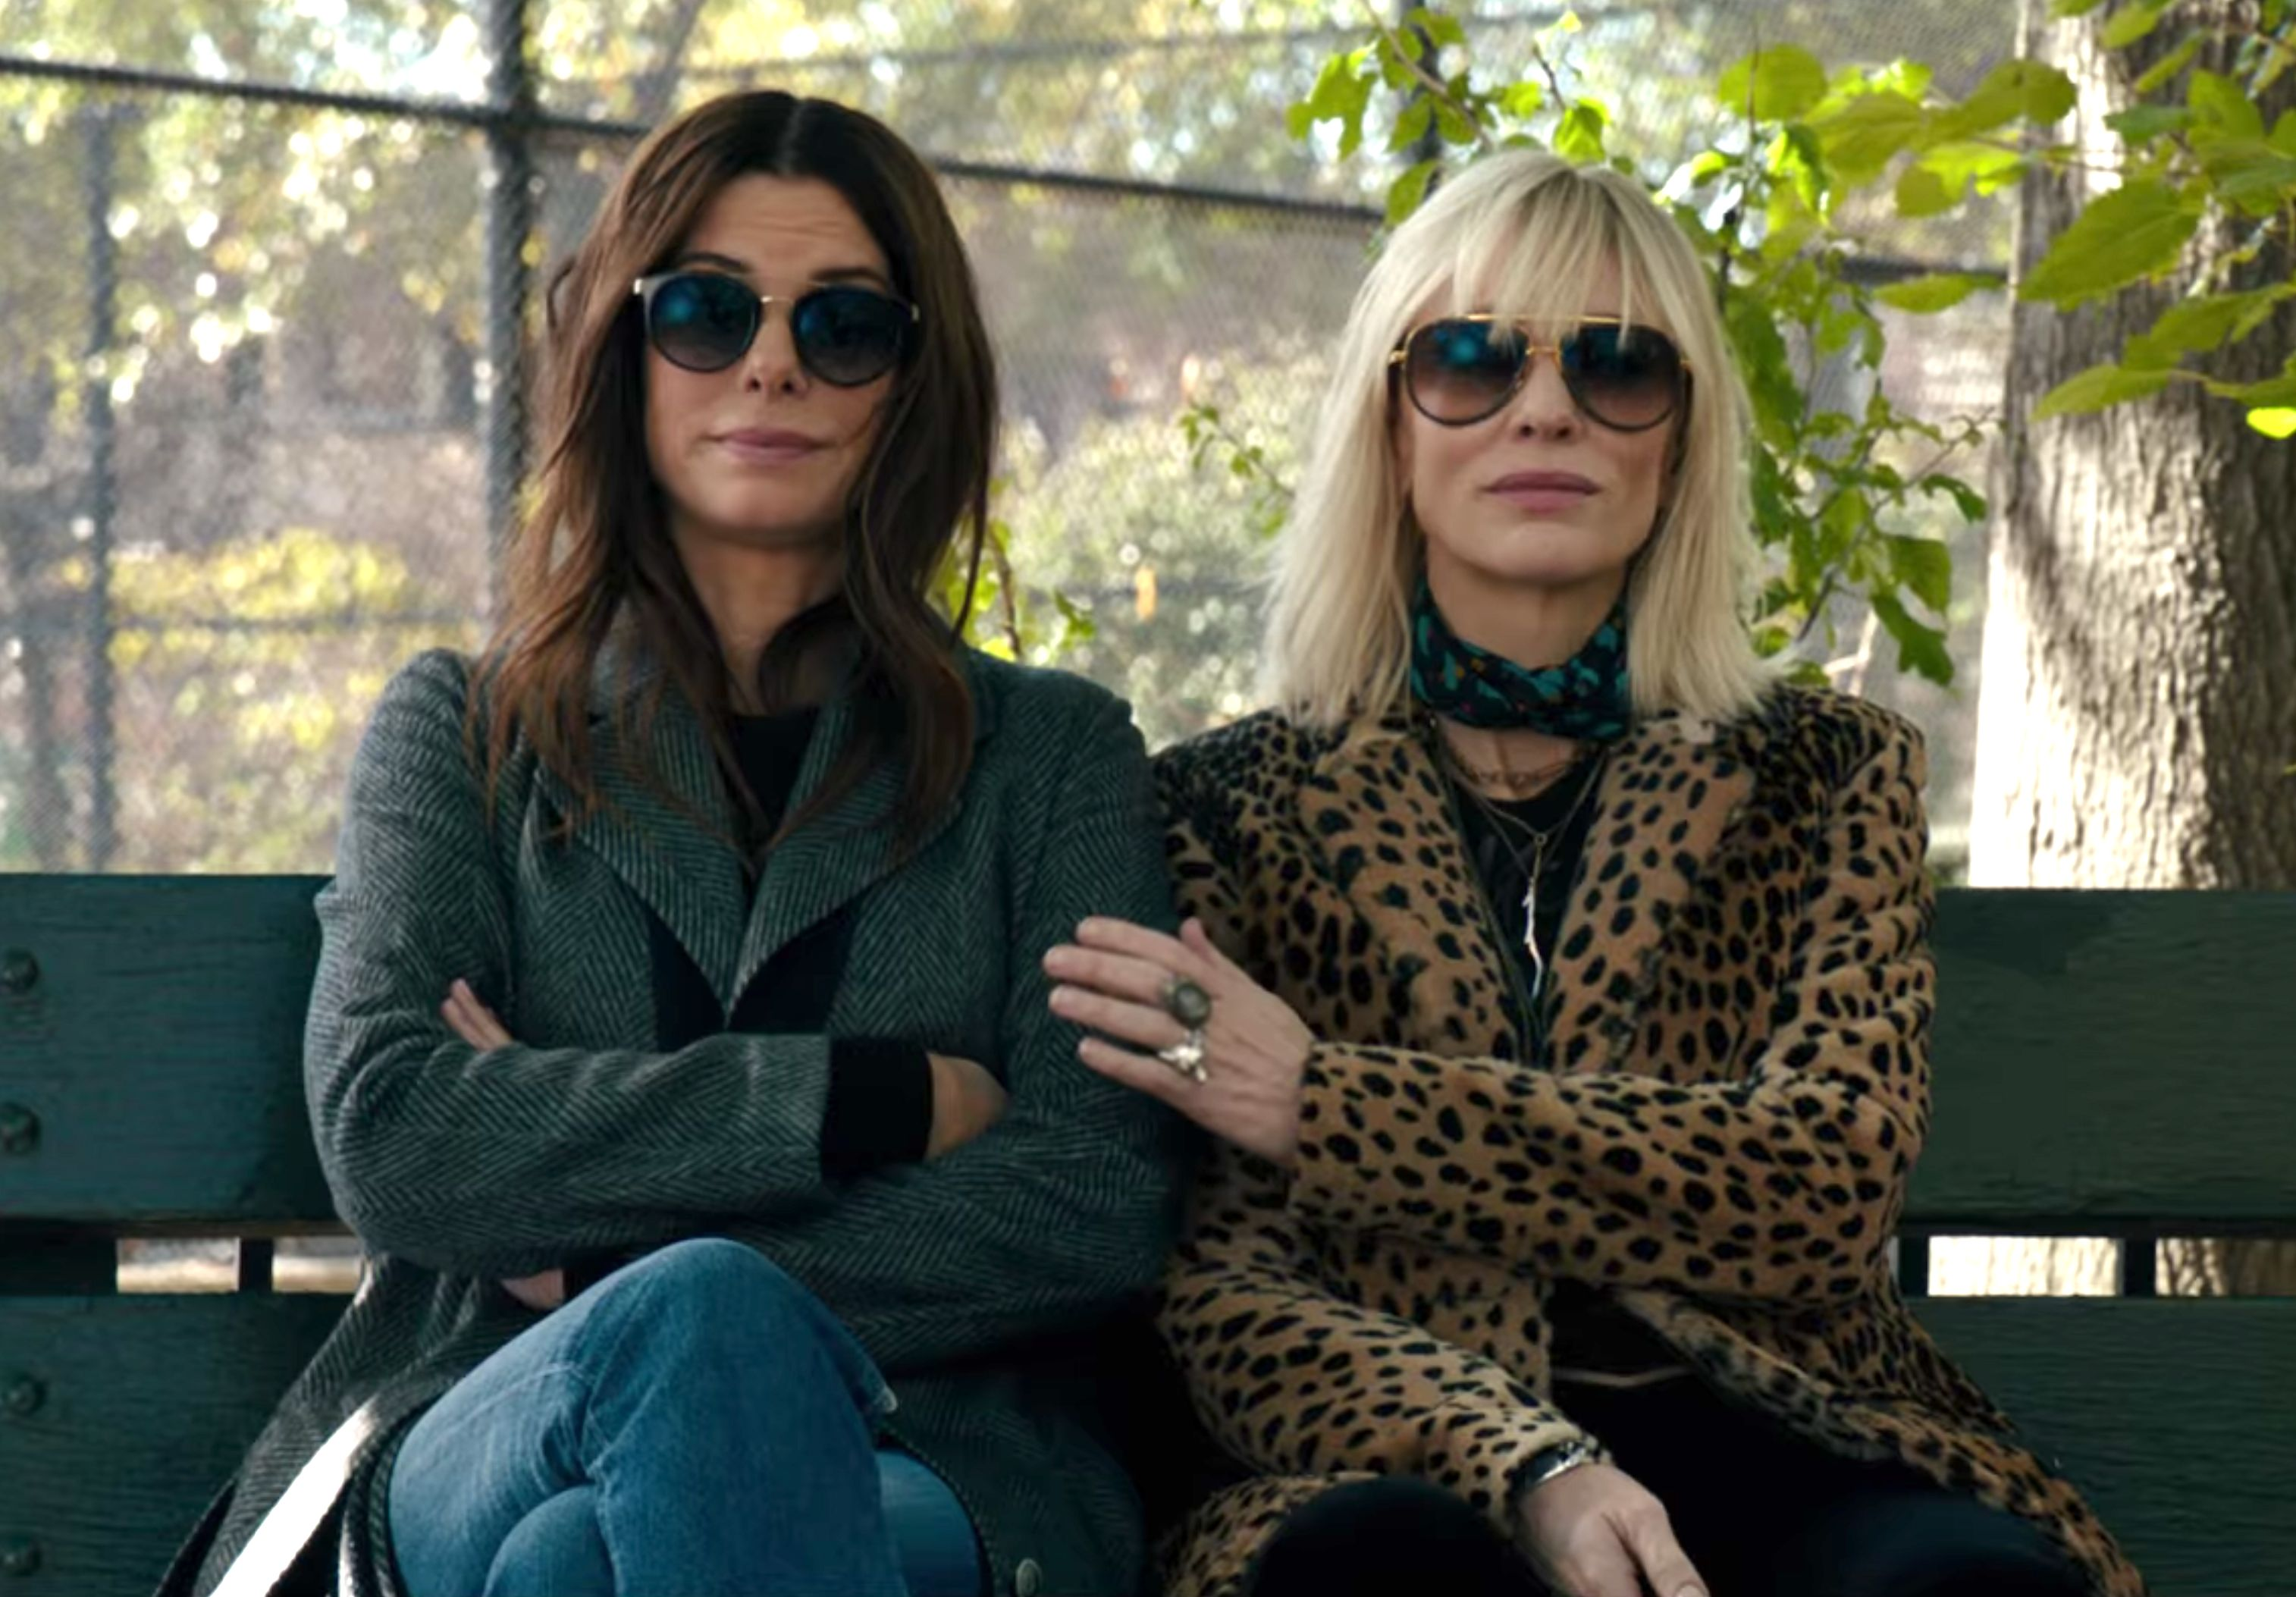 Sandra Bullock and Cate Blanchett in Oceans 8